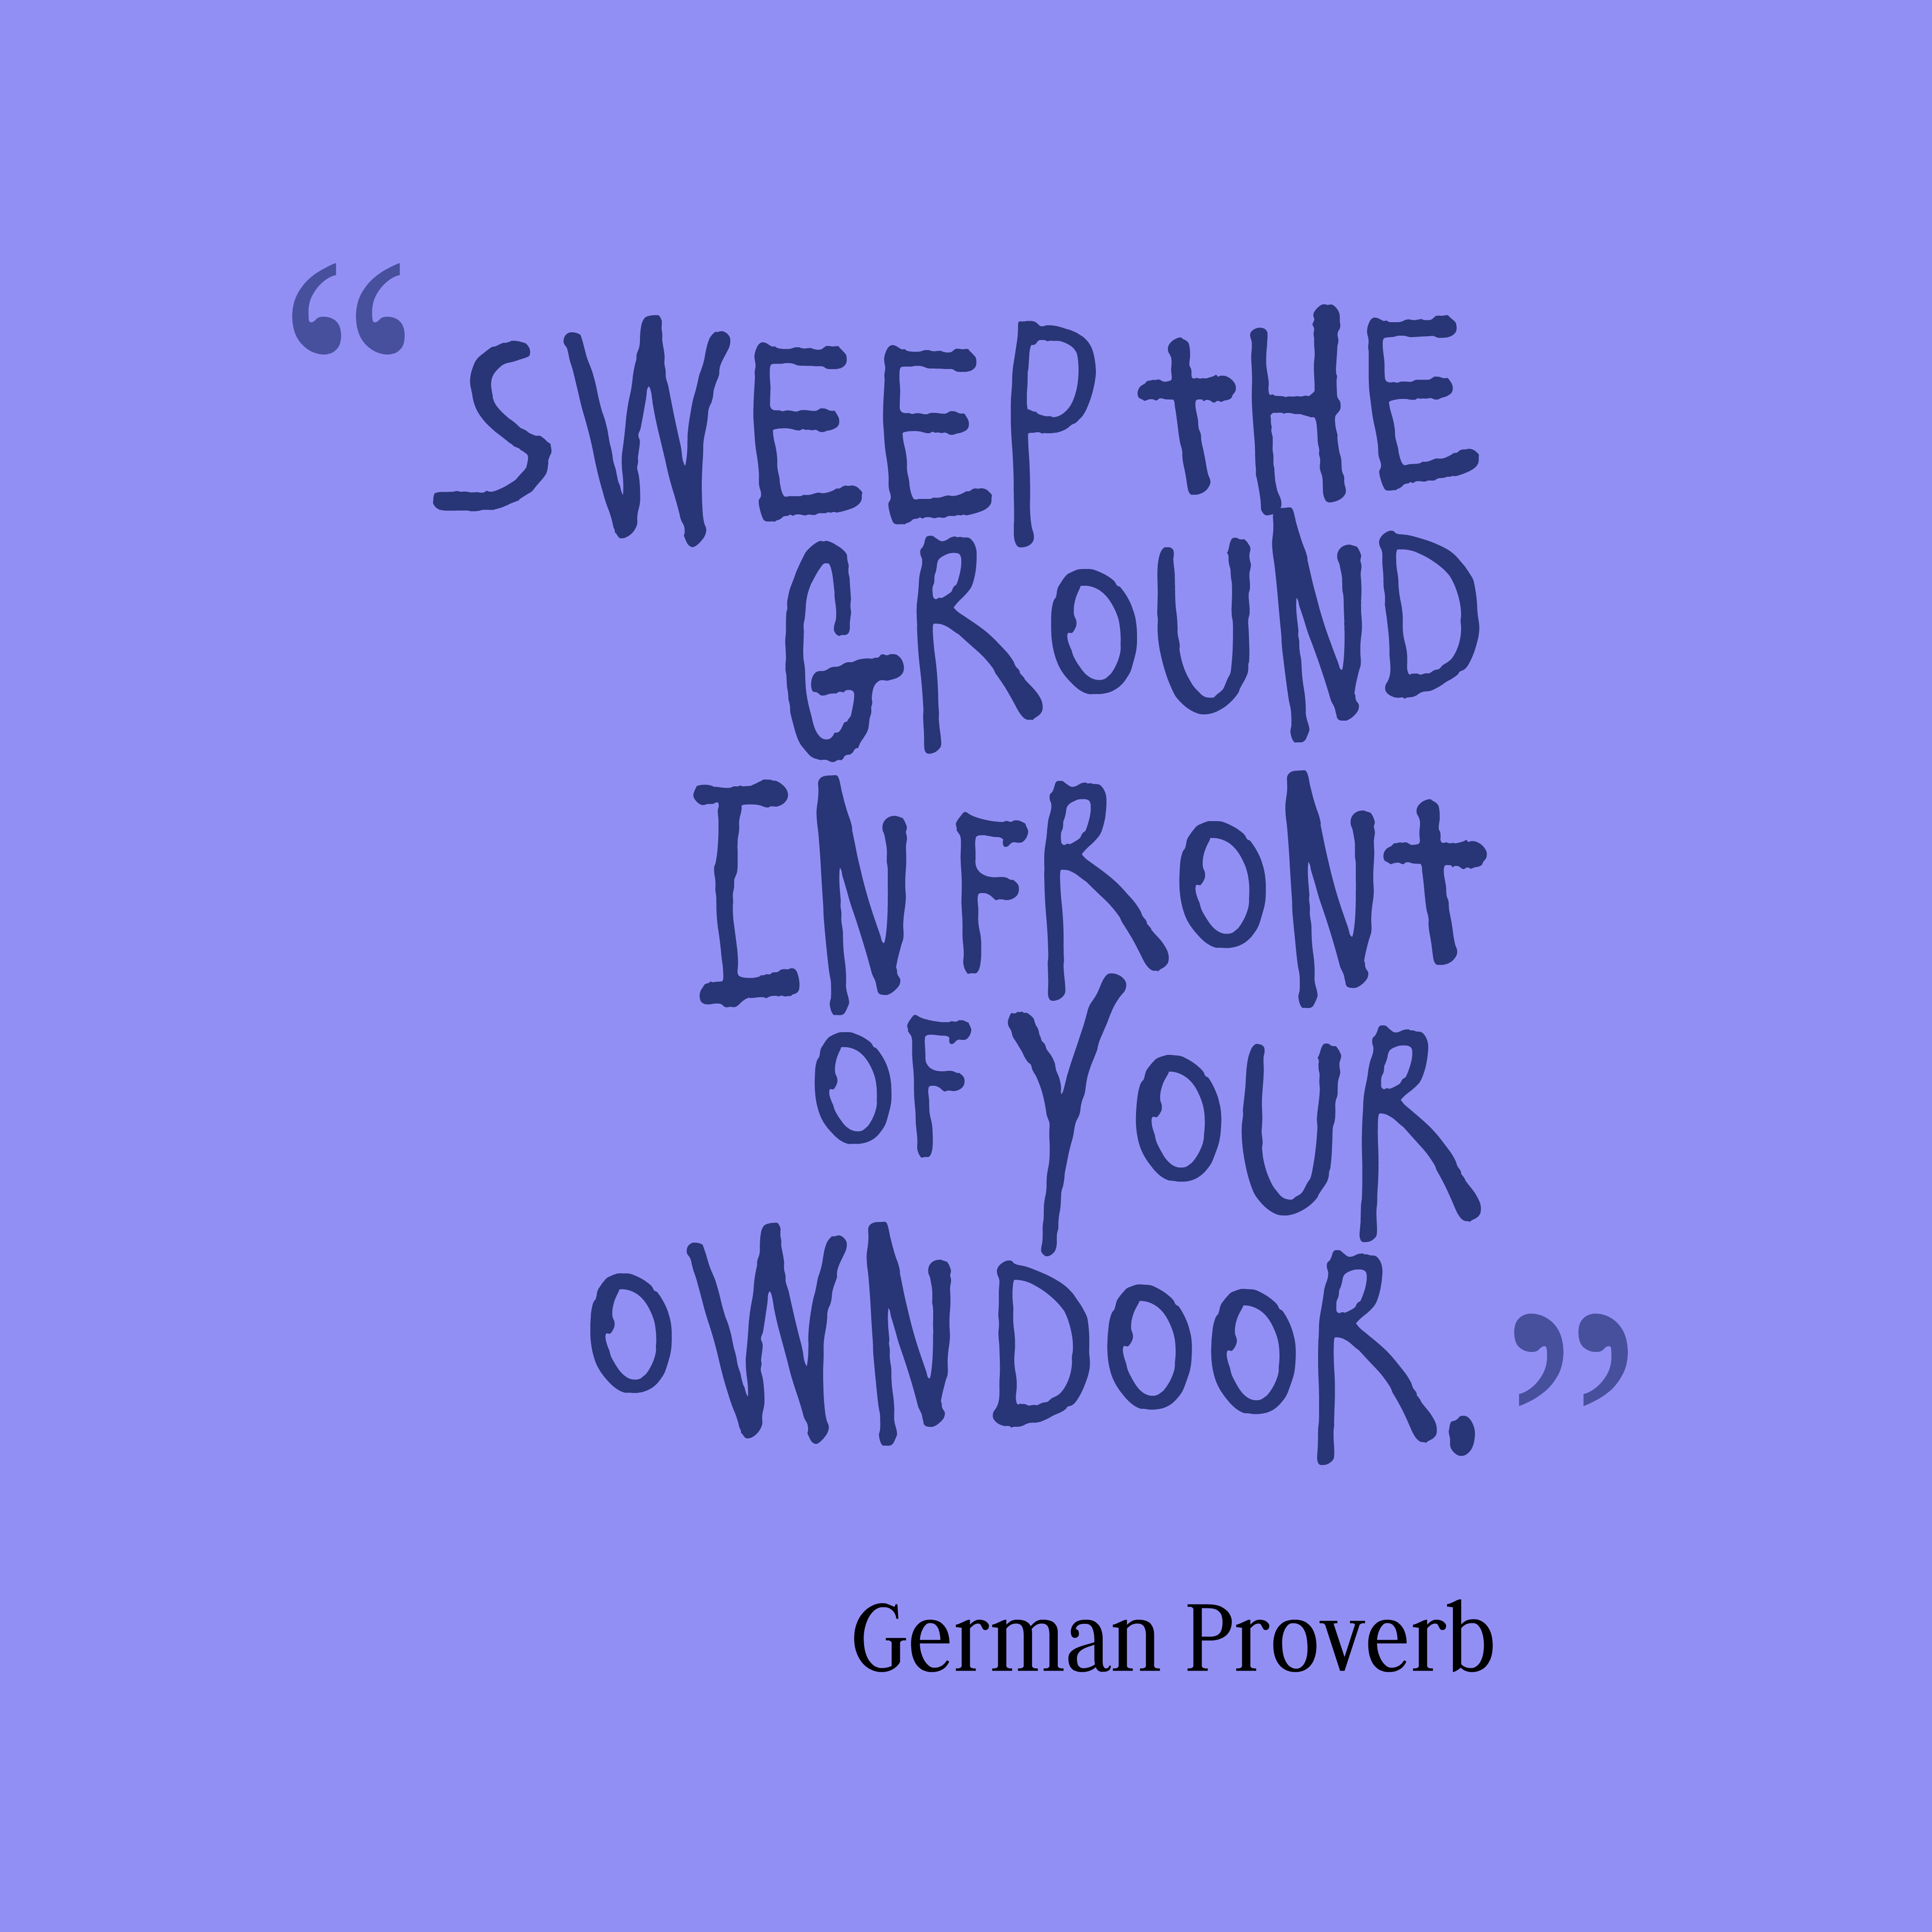 German Proverb About Business